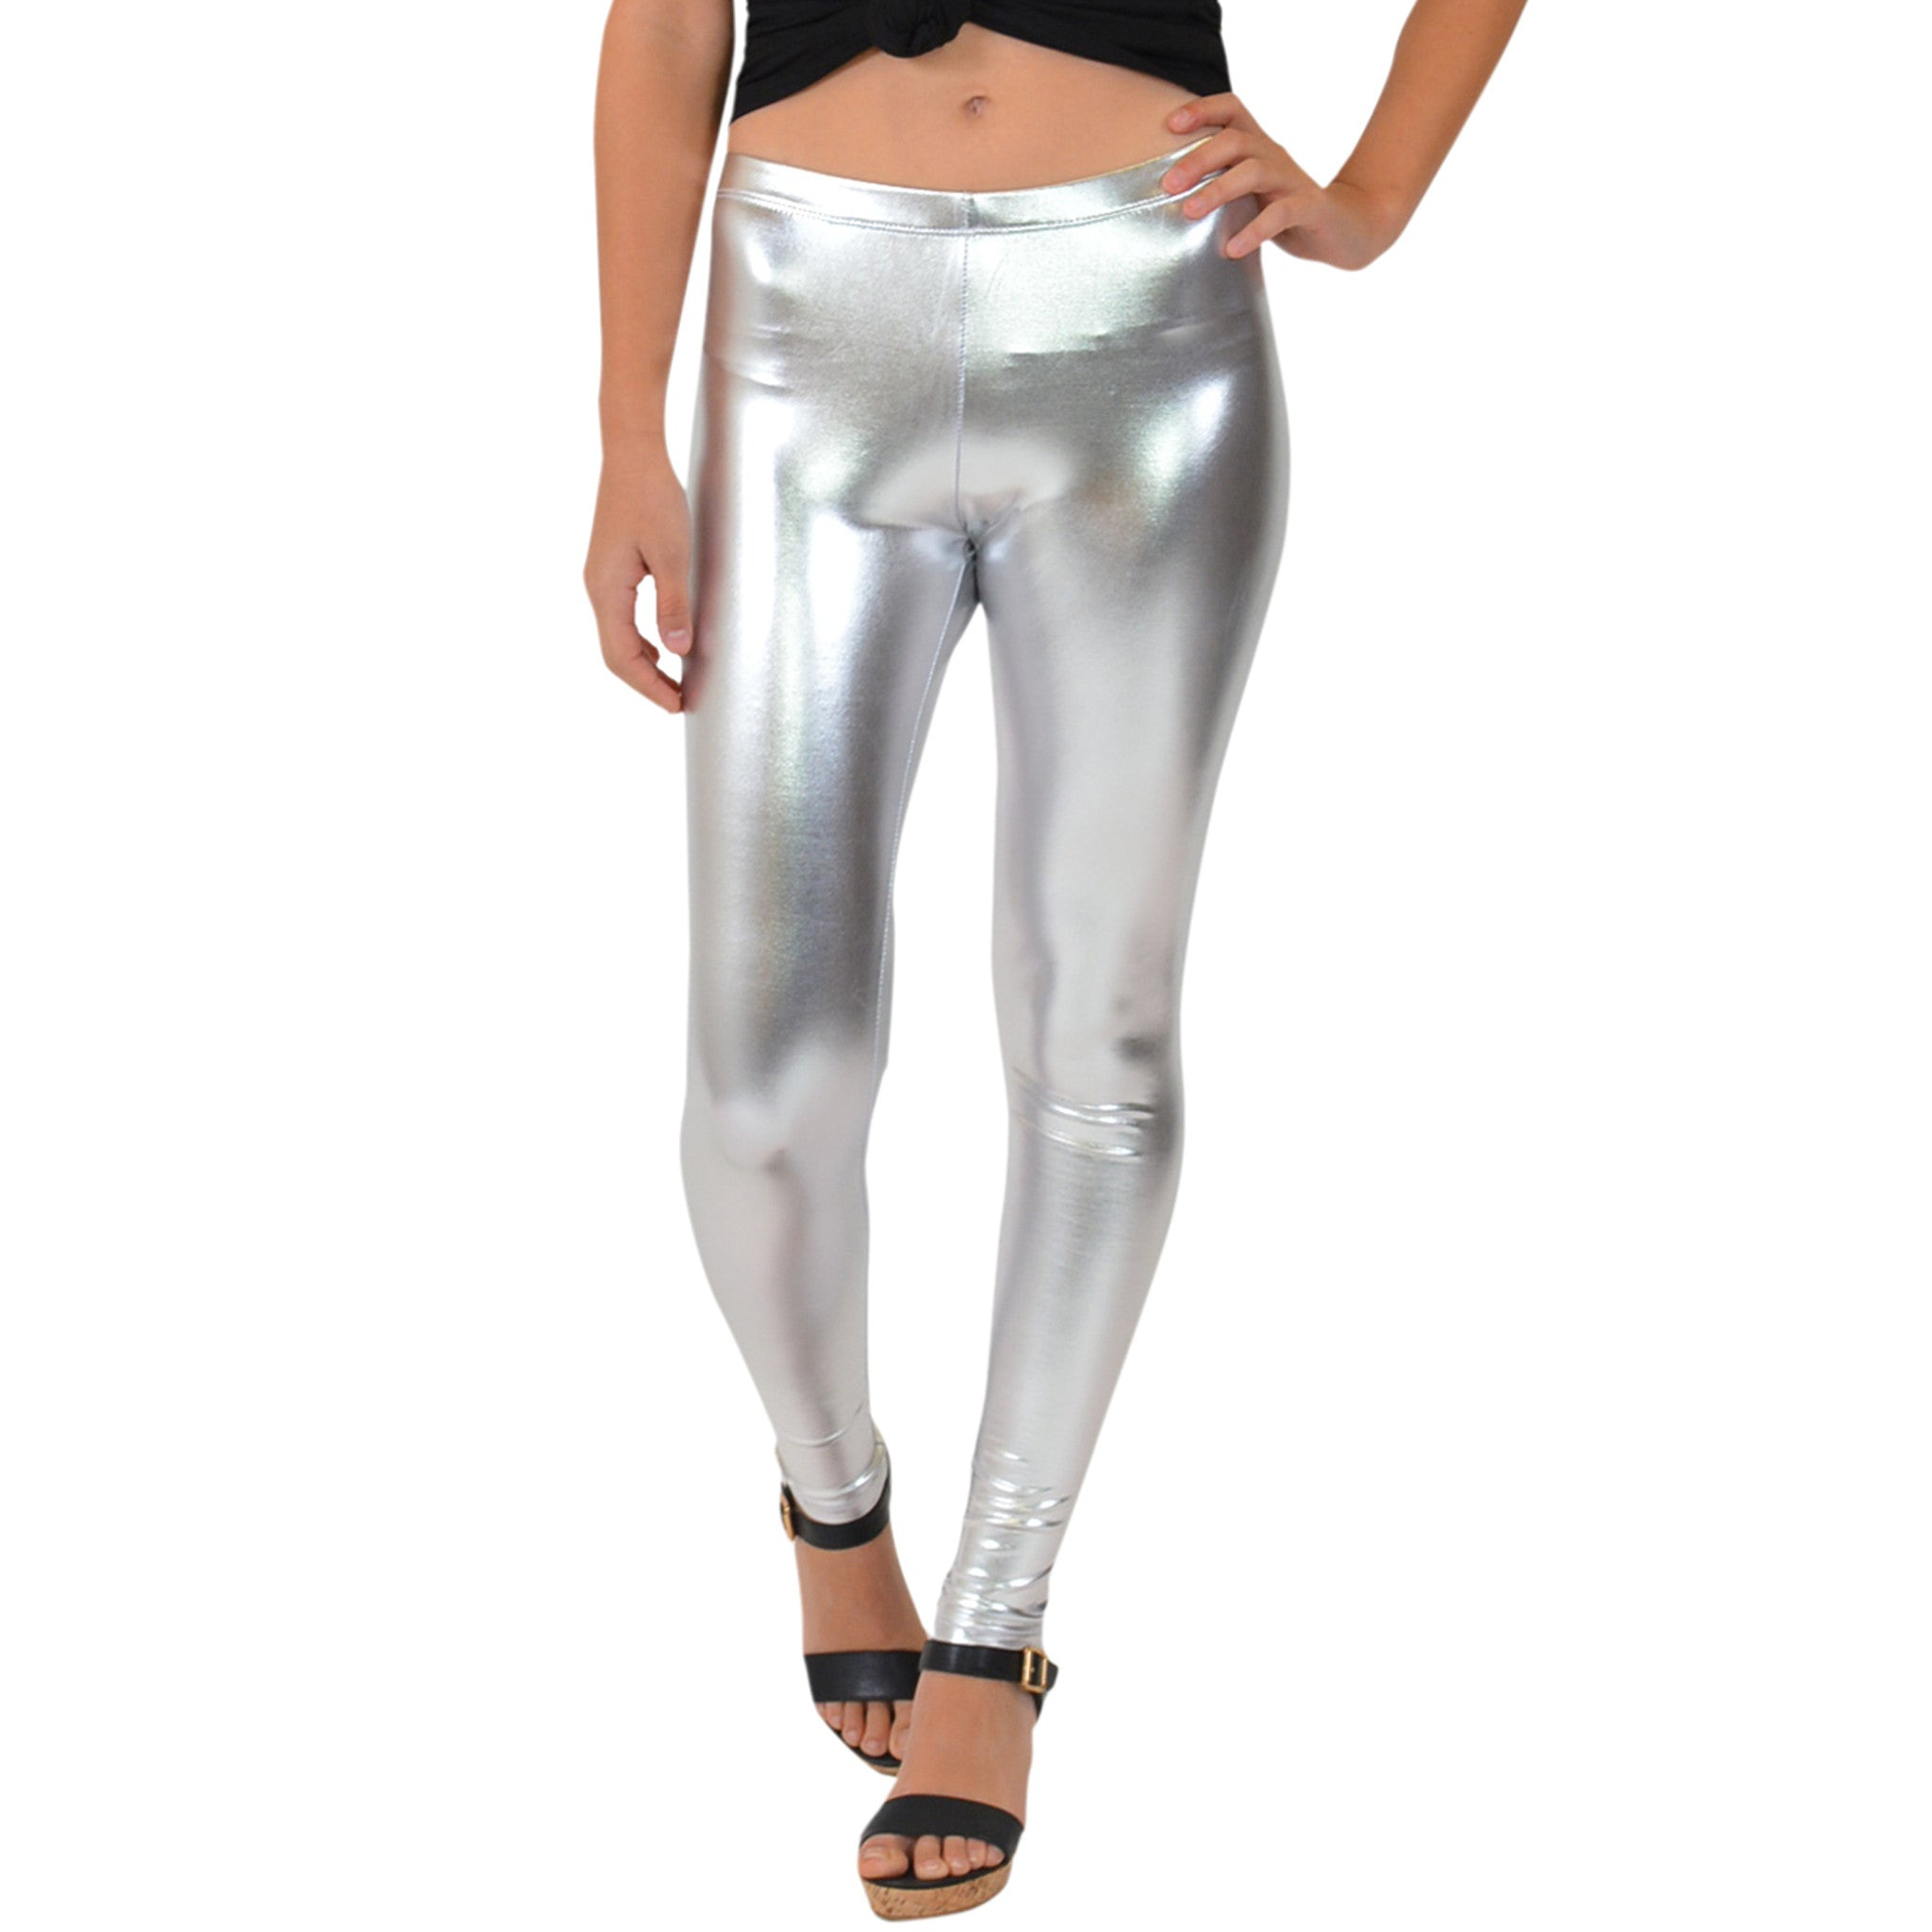 Women's Metallic Leggings